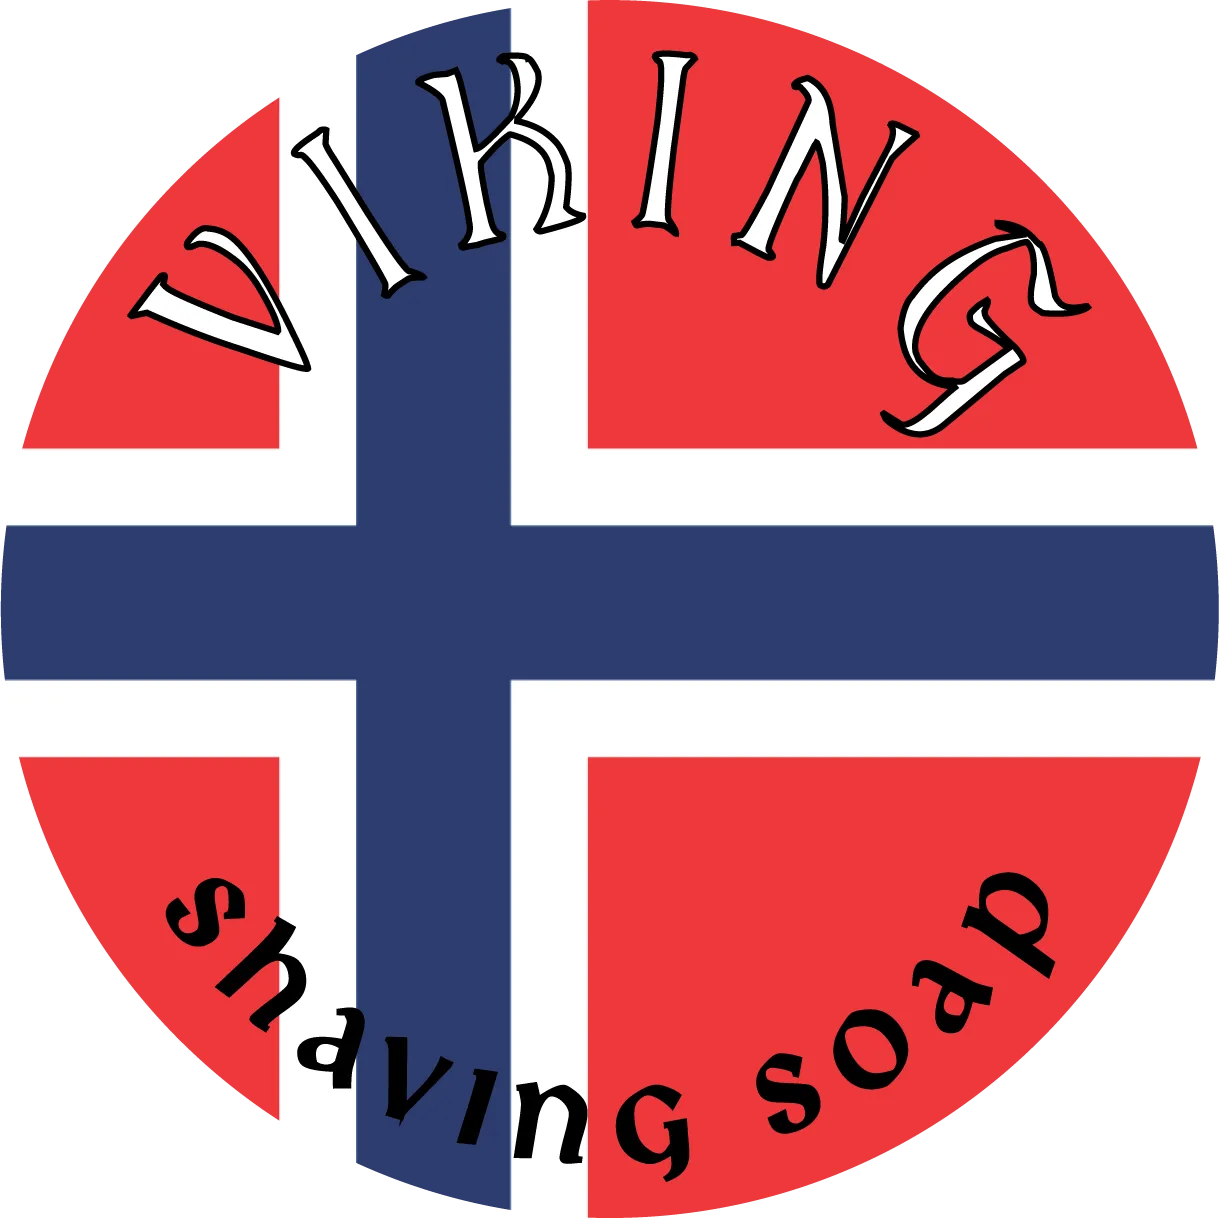 Viking Shaving Soap - Norway - Soap image